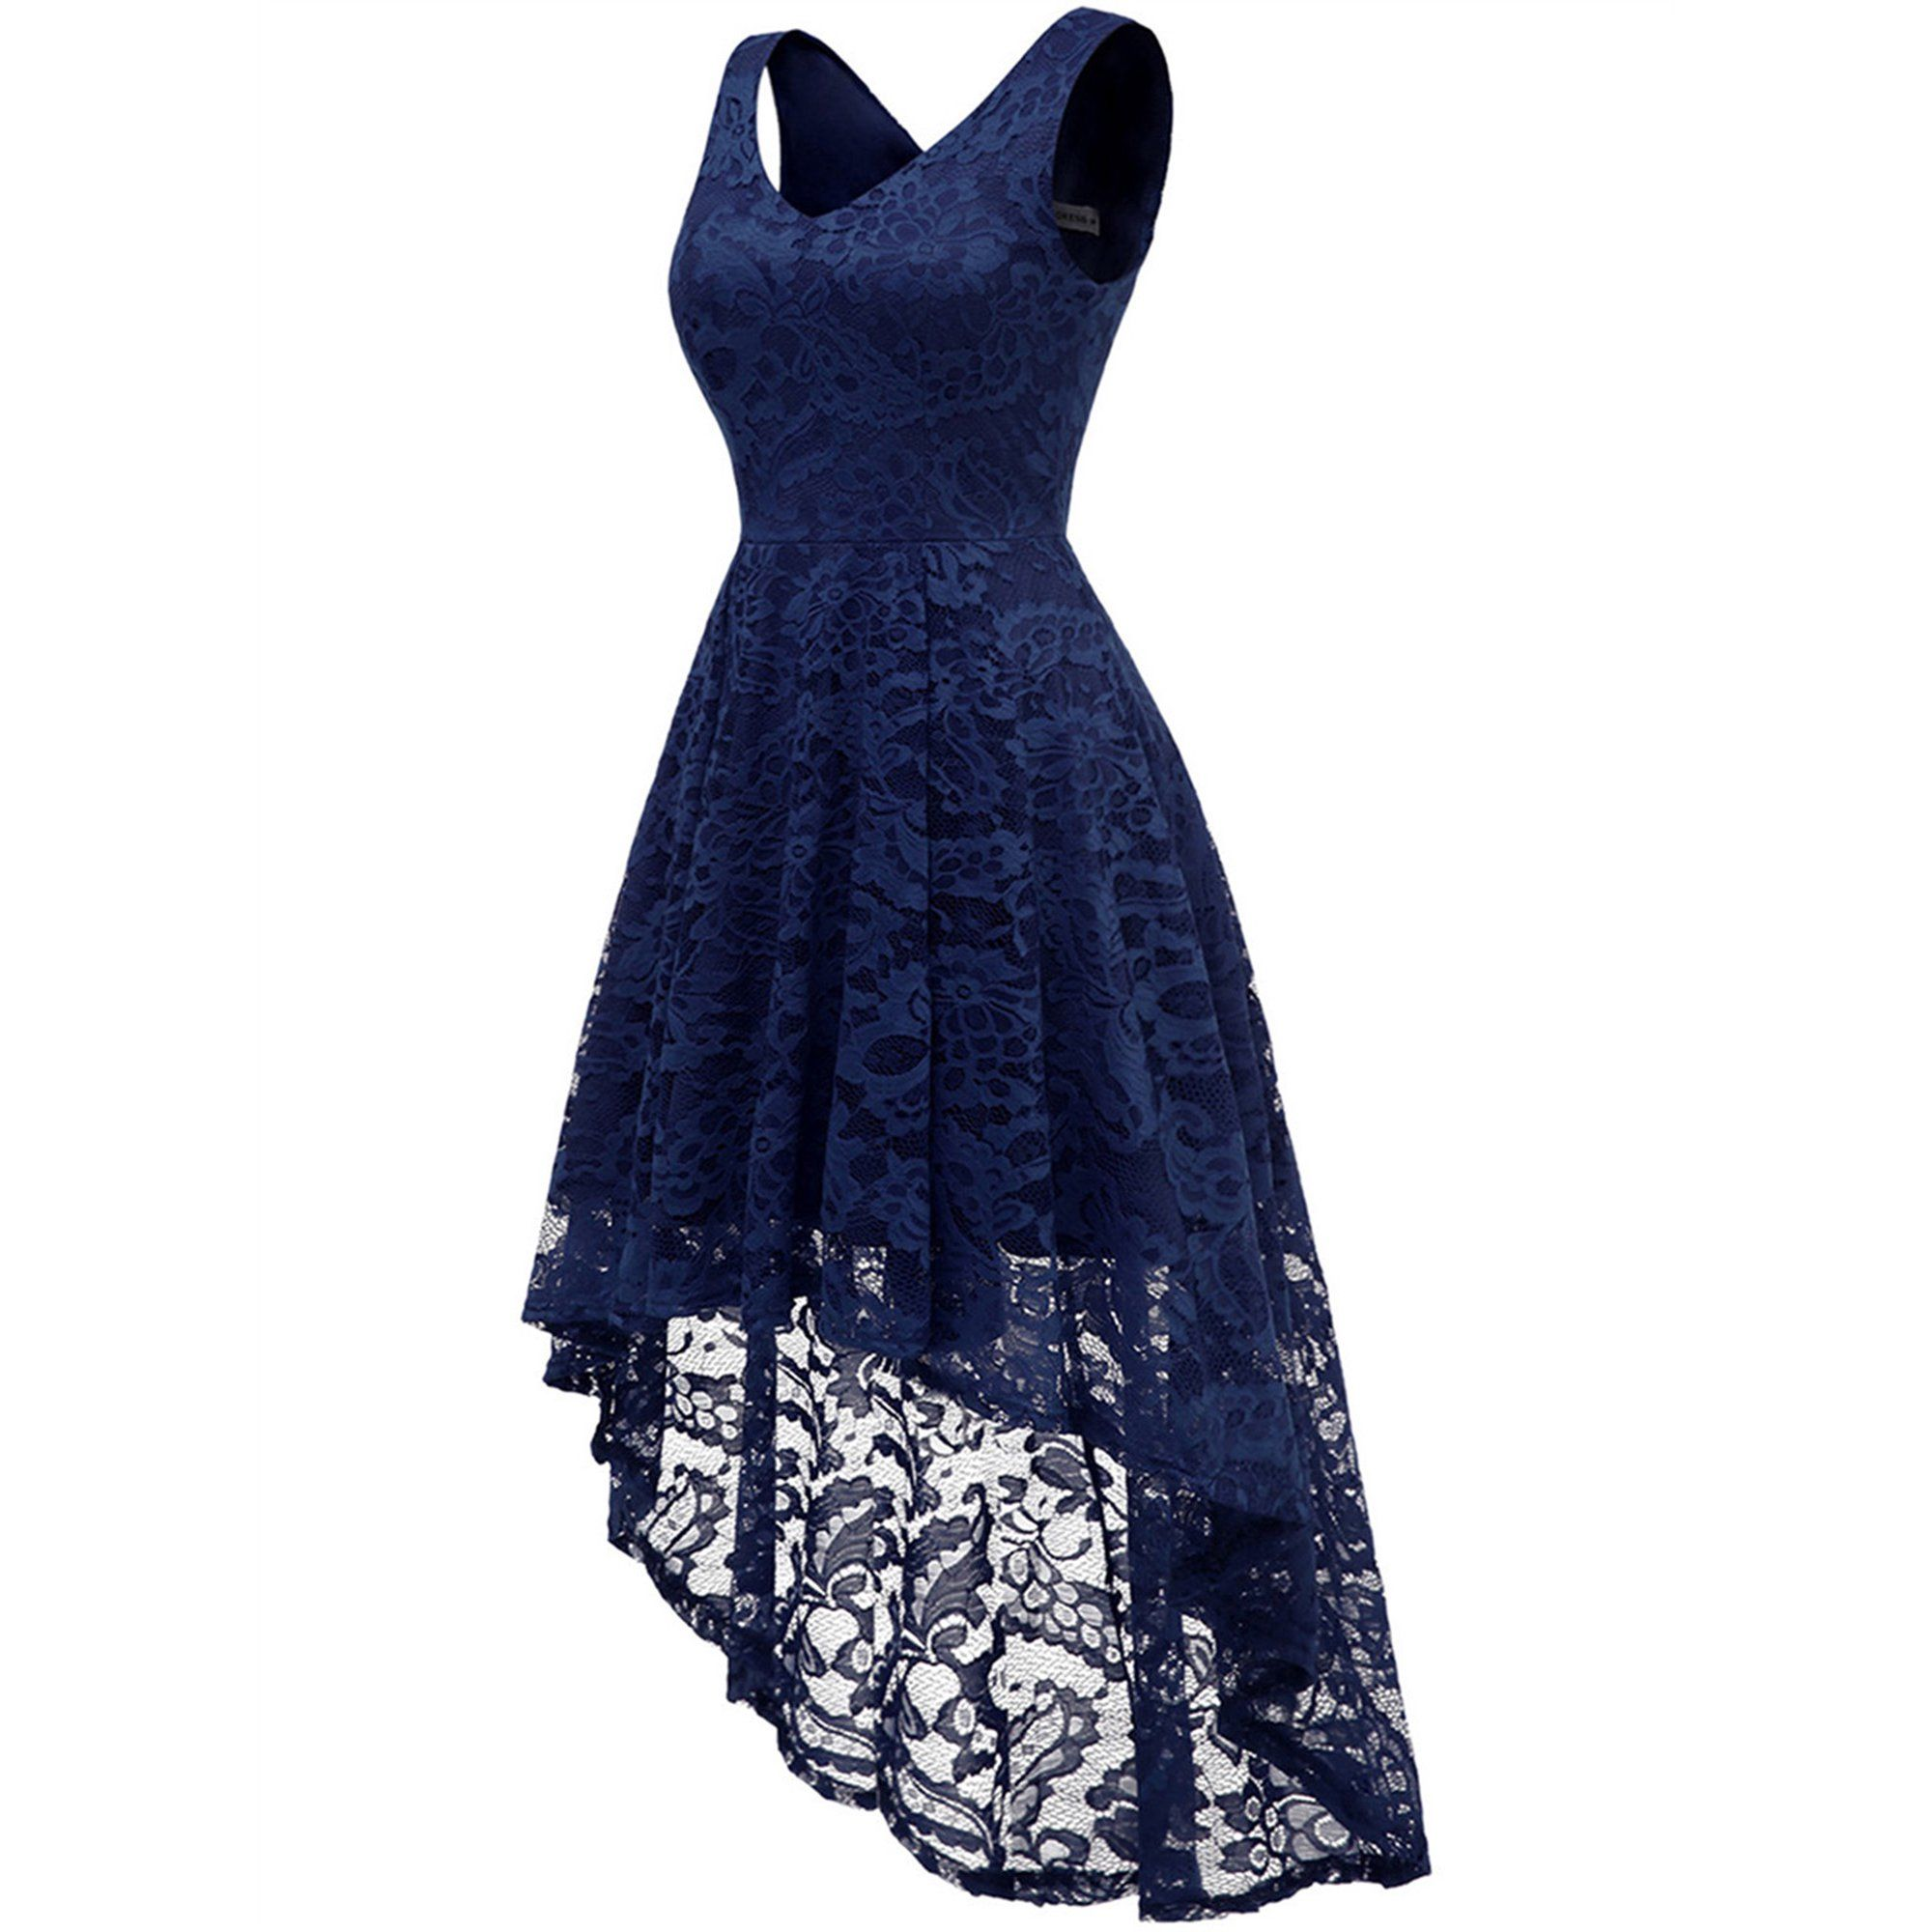 Market In The Box Market In The Box Women Lace Dress Hi Lo Maxi Formal Cocktail Wedding Party Dress Walmart Com Women Lace Dress Lace Formal Dress Cocktail Dress Party [ 2000 x 2000 Pixel ]